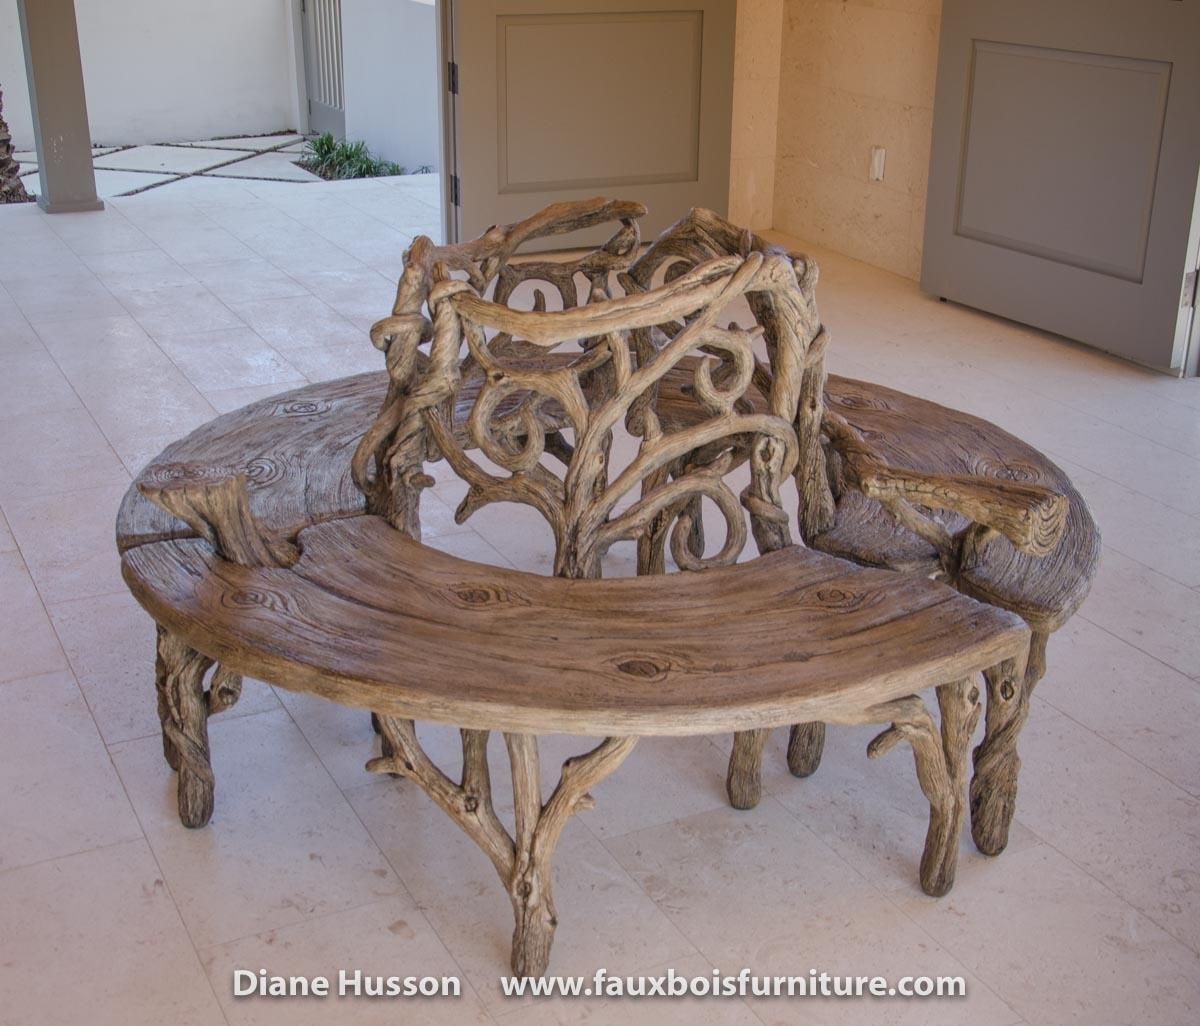 Gallery - Diane Husson intended for Faux Bois Coffee Tables (Image 24 of 30)